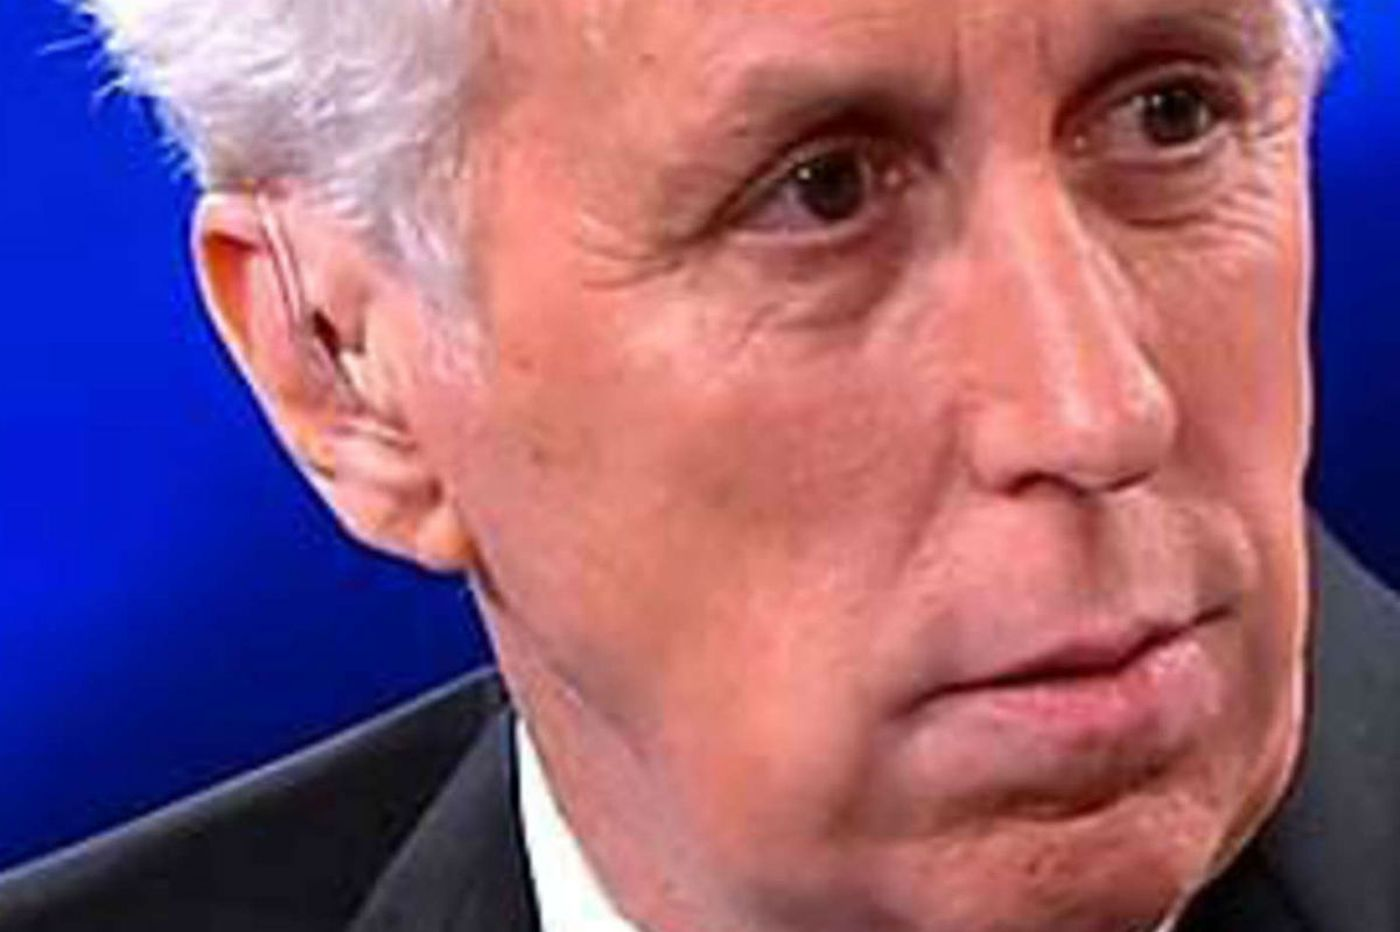 Live from Harrisburg: It's Jeffrey Lord, Donald Trump's defender on CNN